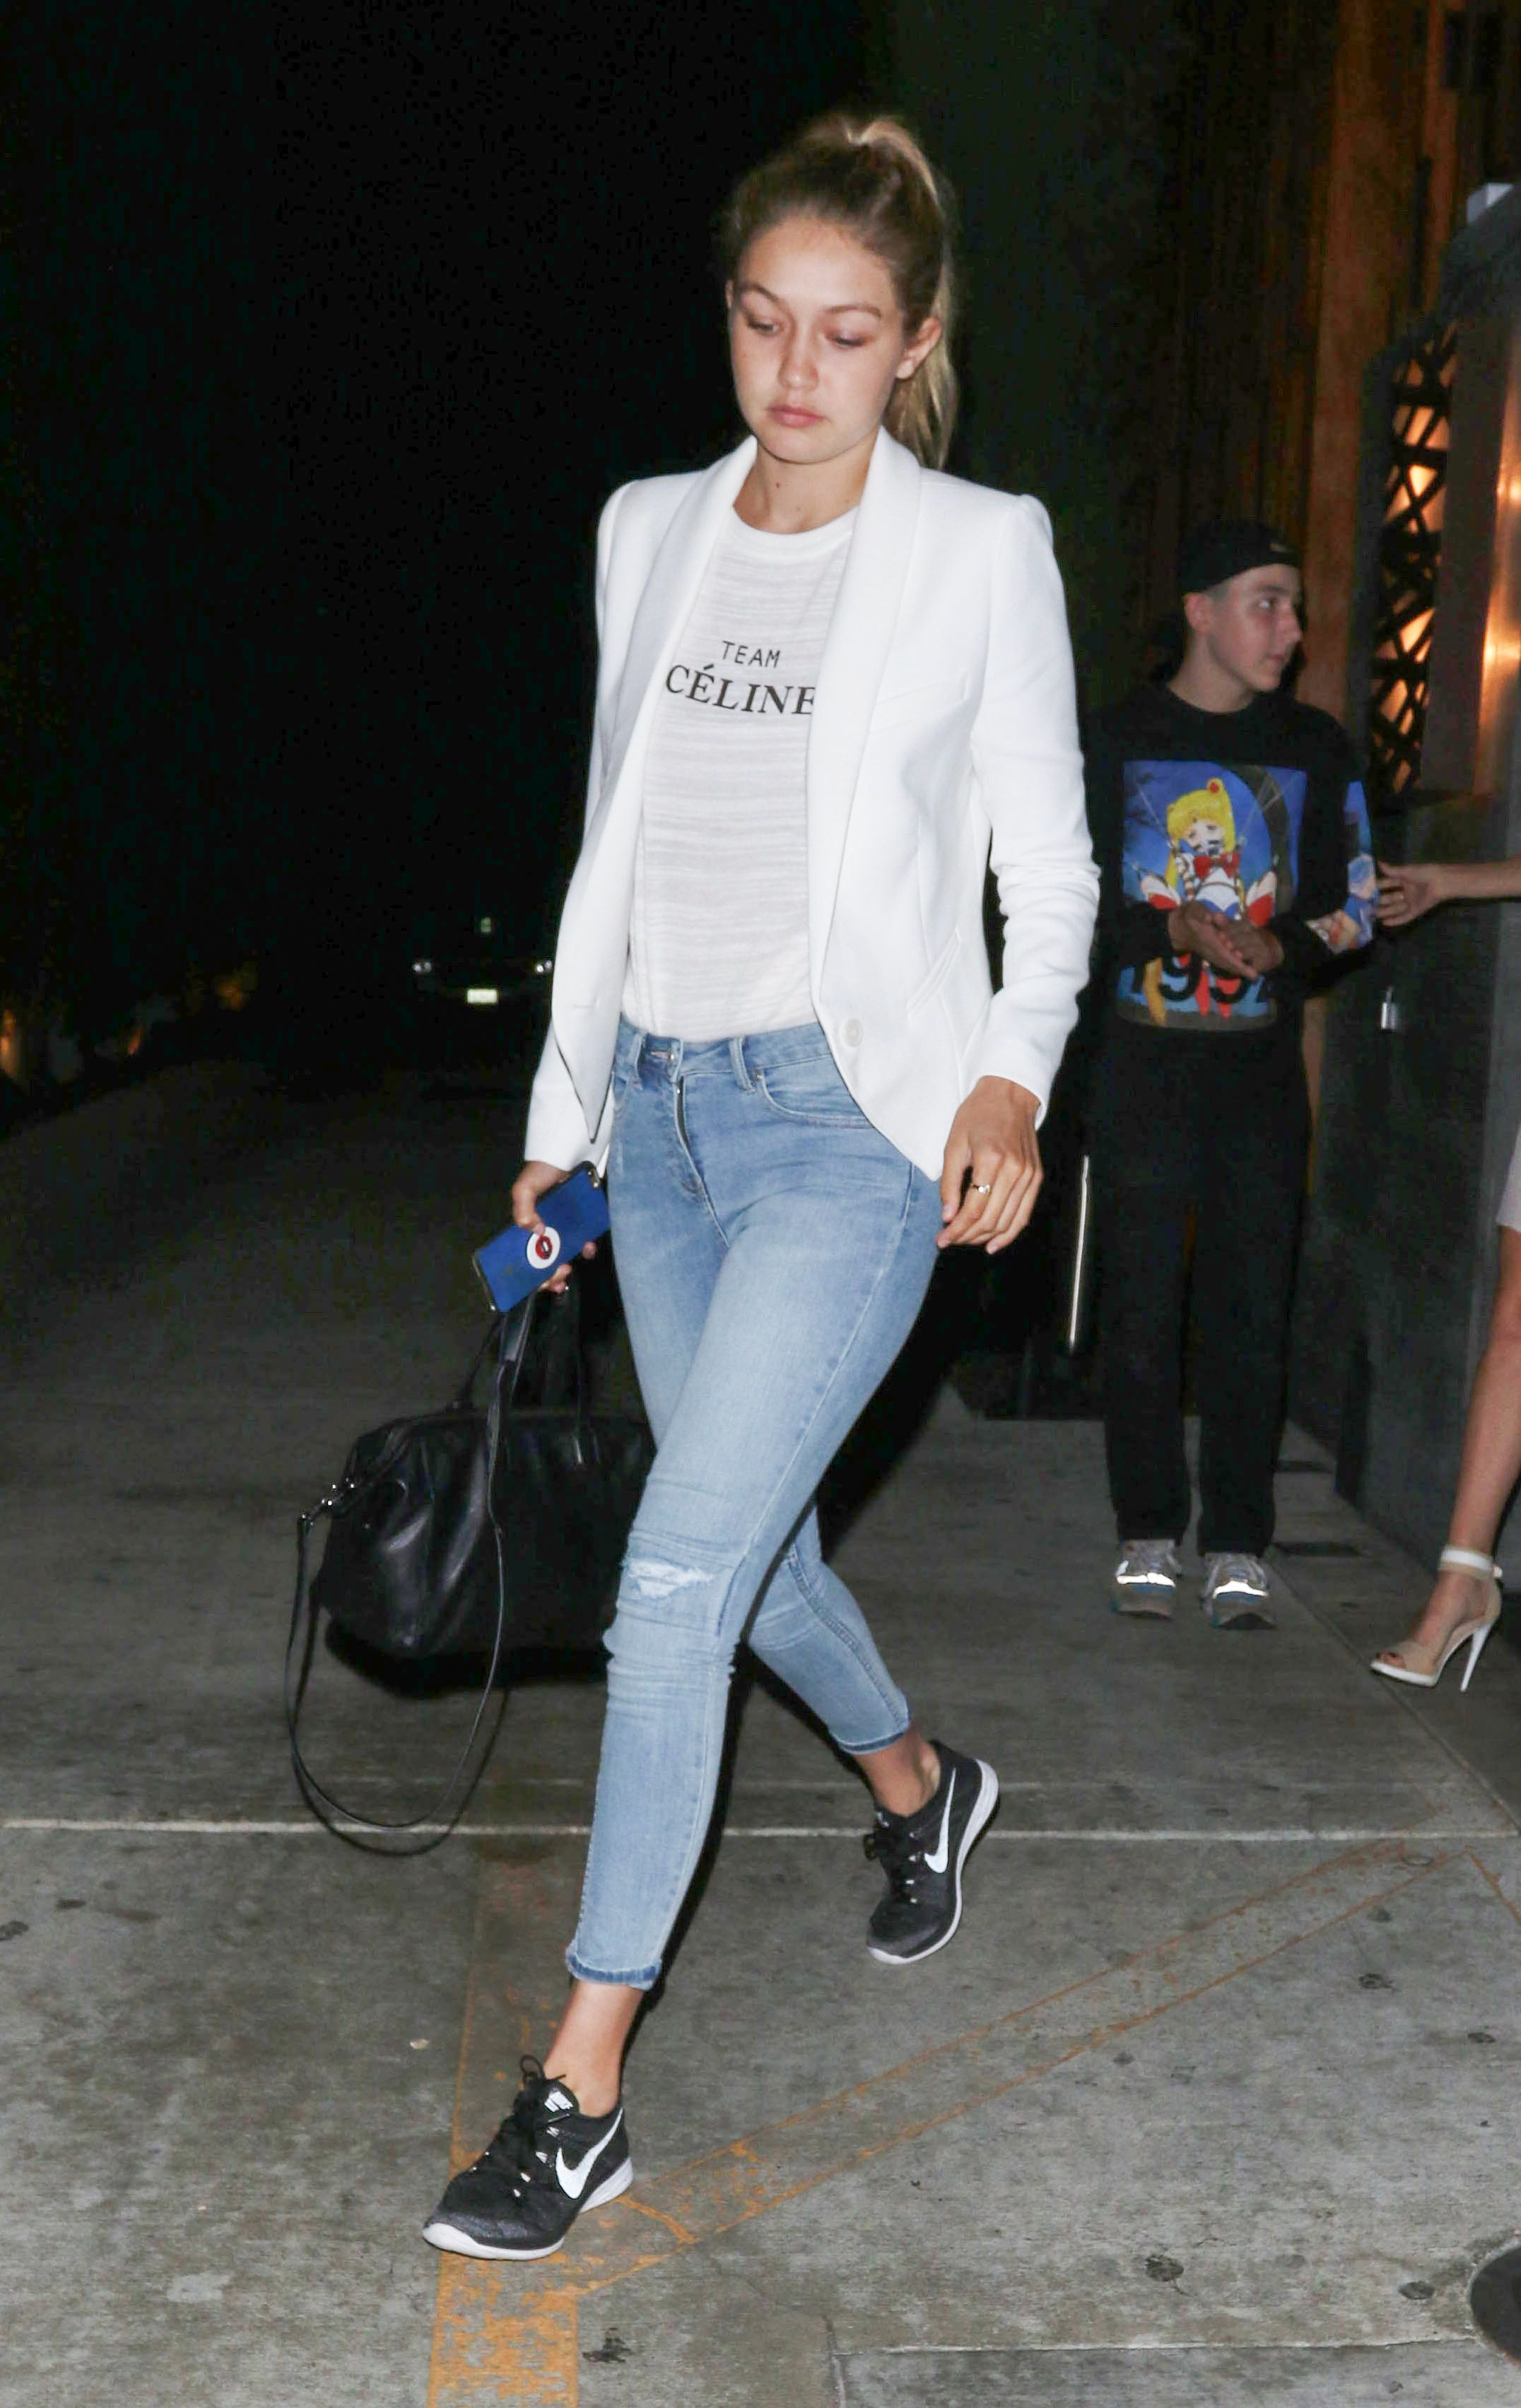 Gigi Hadid Style  Get Her Look for Less   what to wear.   Gigi hadid ... 062cd65aba82